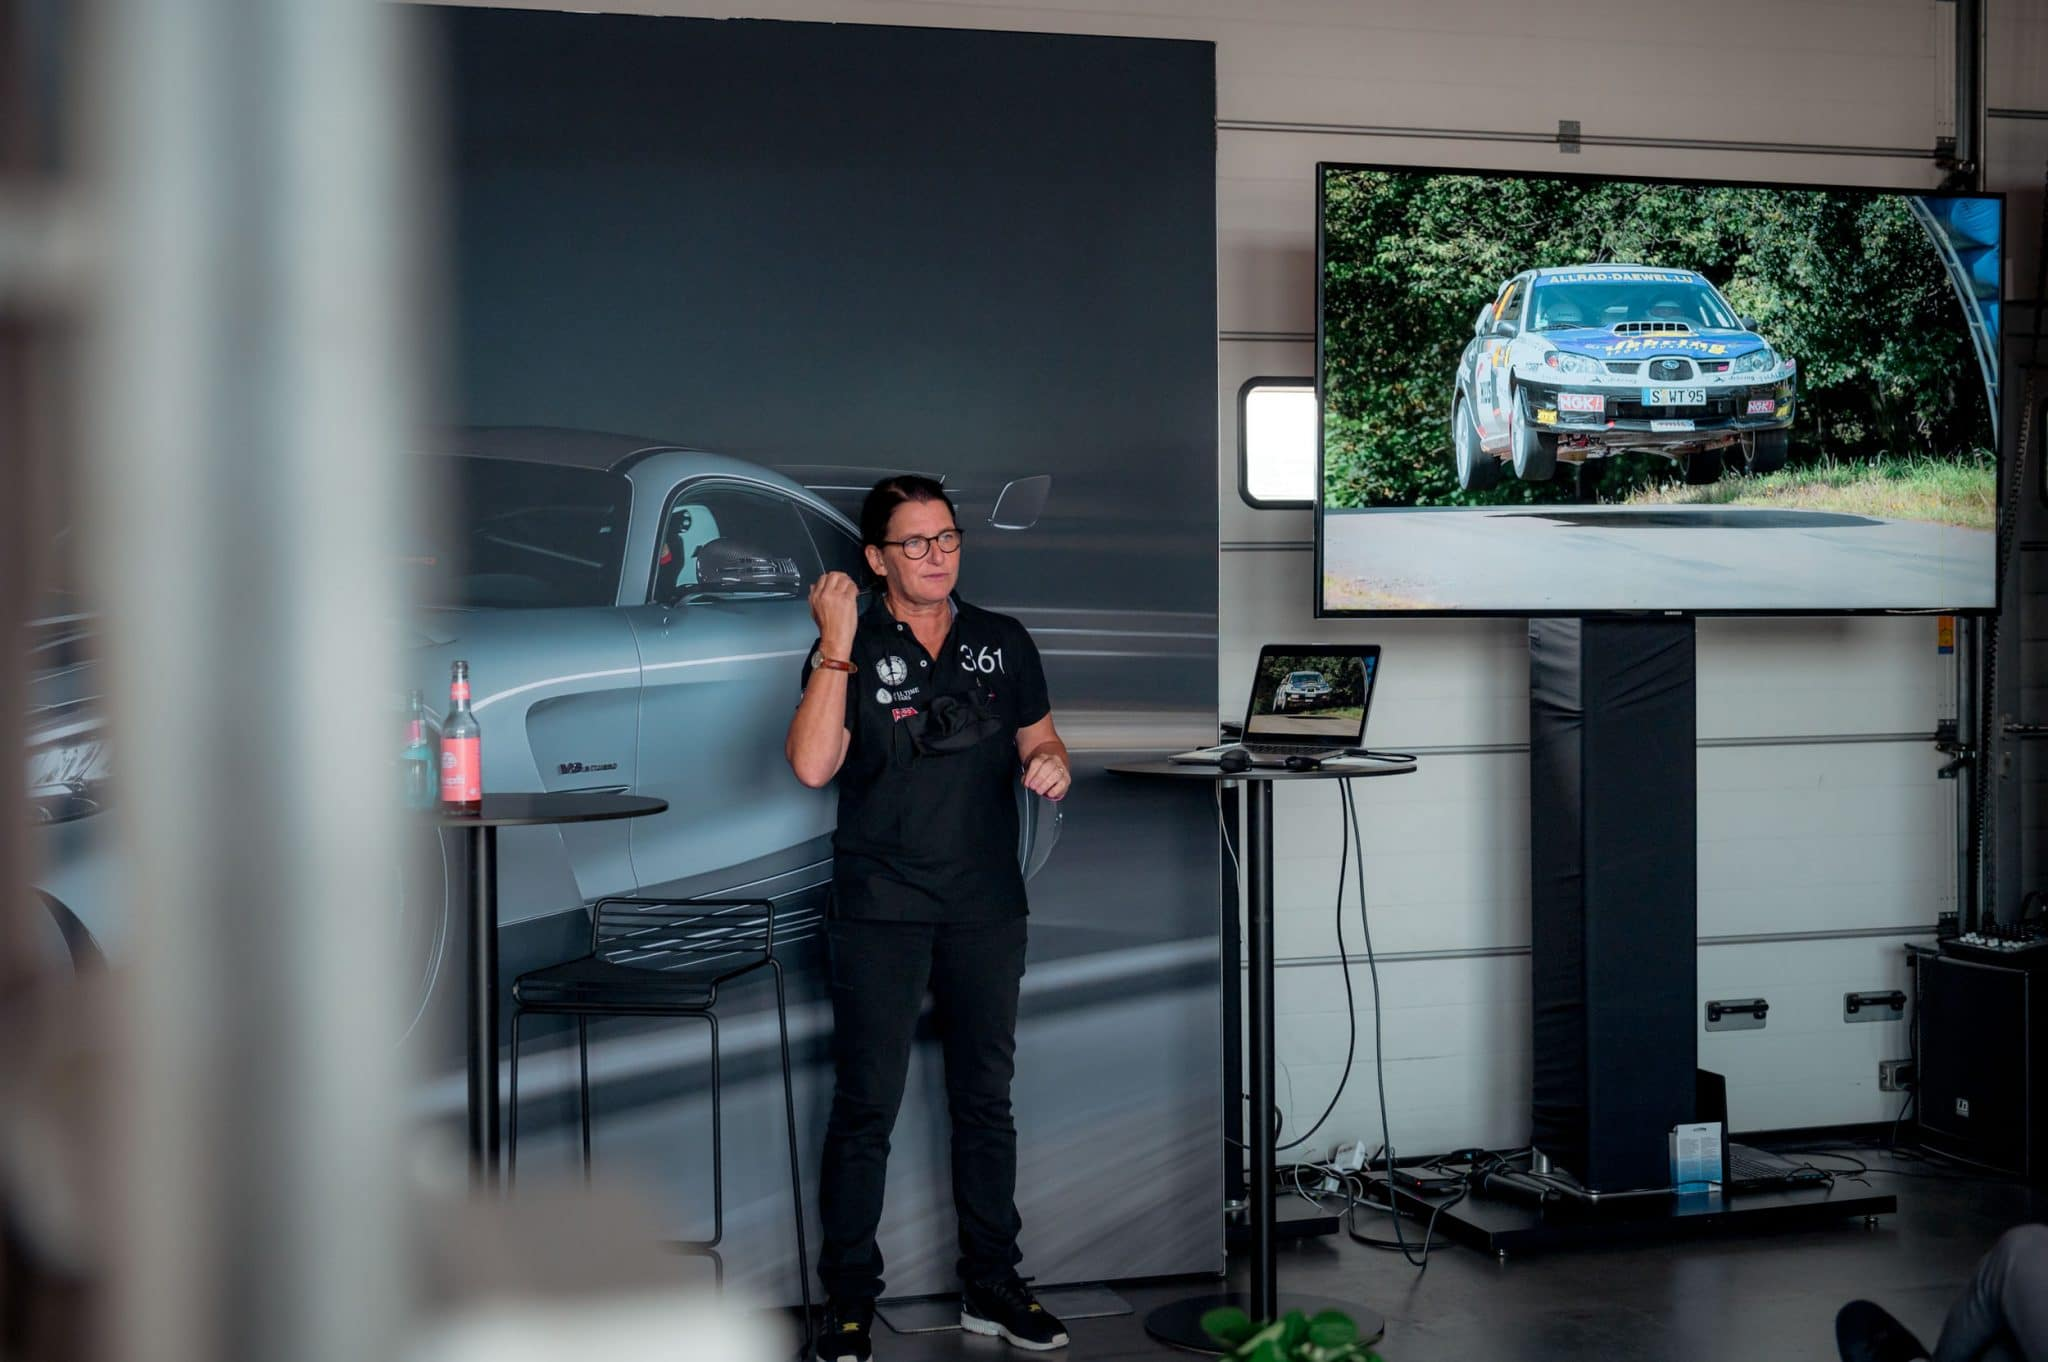 Mercedes Benz Driving Events Sachsenring 11. September 2020 442 scaled |